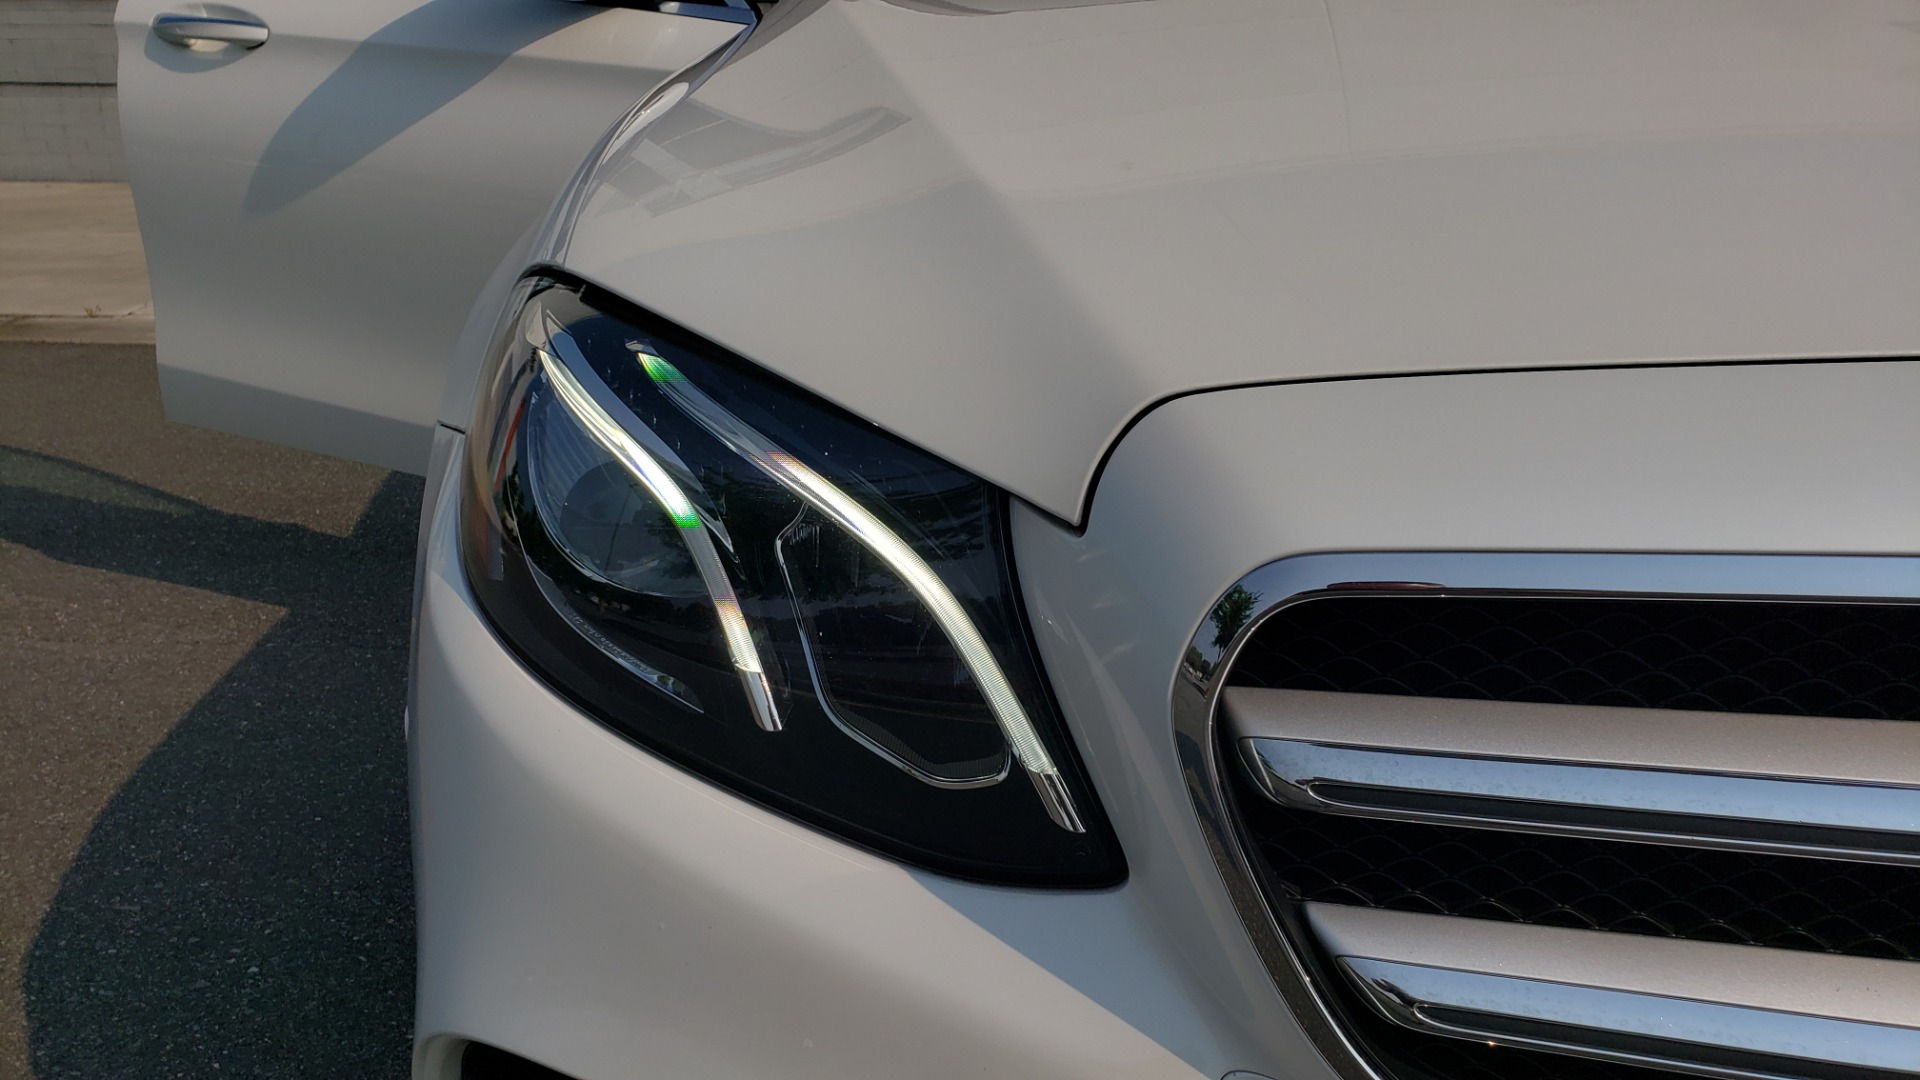 Used 2018 Mercedes-Benz E-CLASS E 300 4MATIC / PREMIUM / NAV / PANO-ROOF / BURMESTER / REARVIEW for sale $41,995 at Formula Imports in Charlotte NC 28227 20